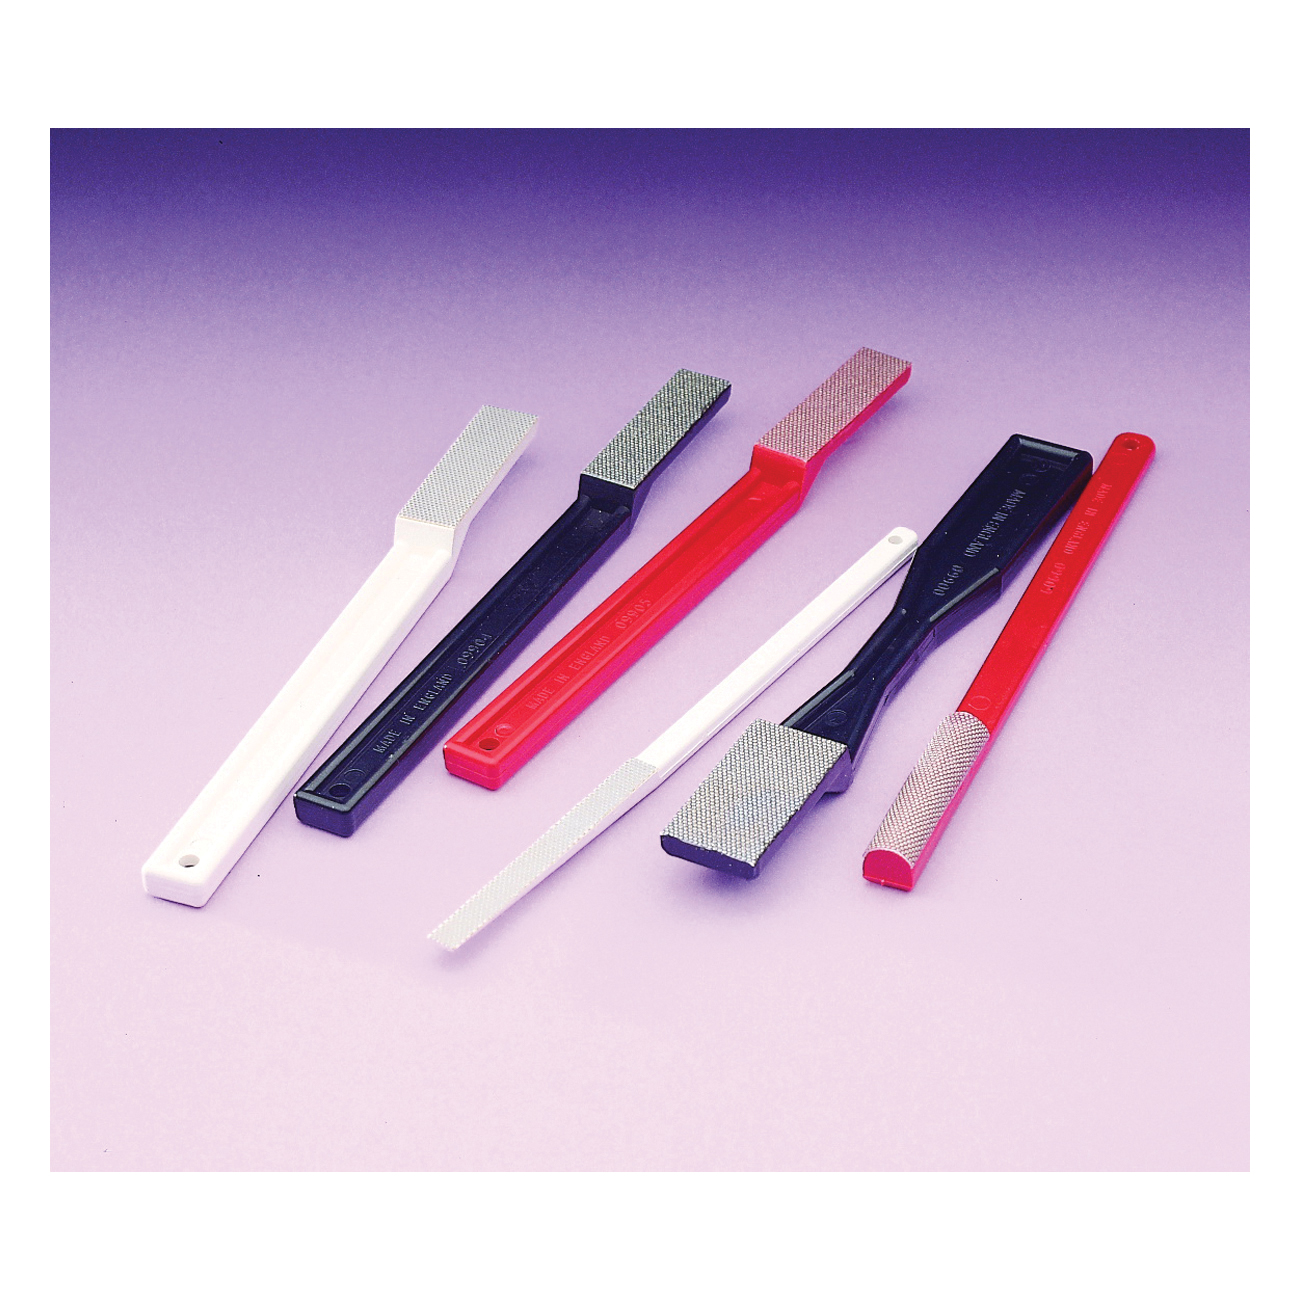 3M™ 051144-80836 Flexible General Purpose Hand File, 1-3/4 in L